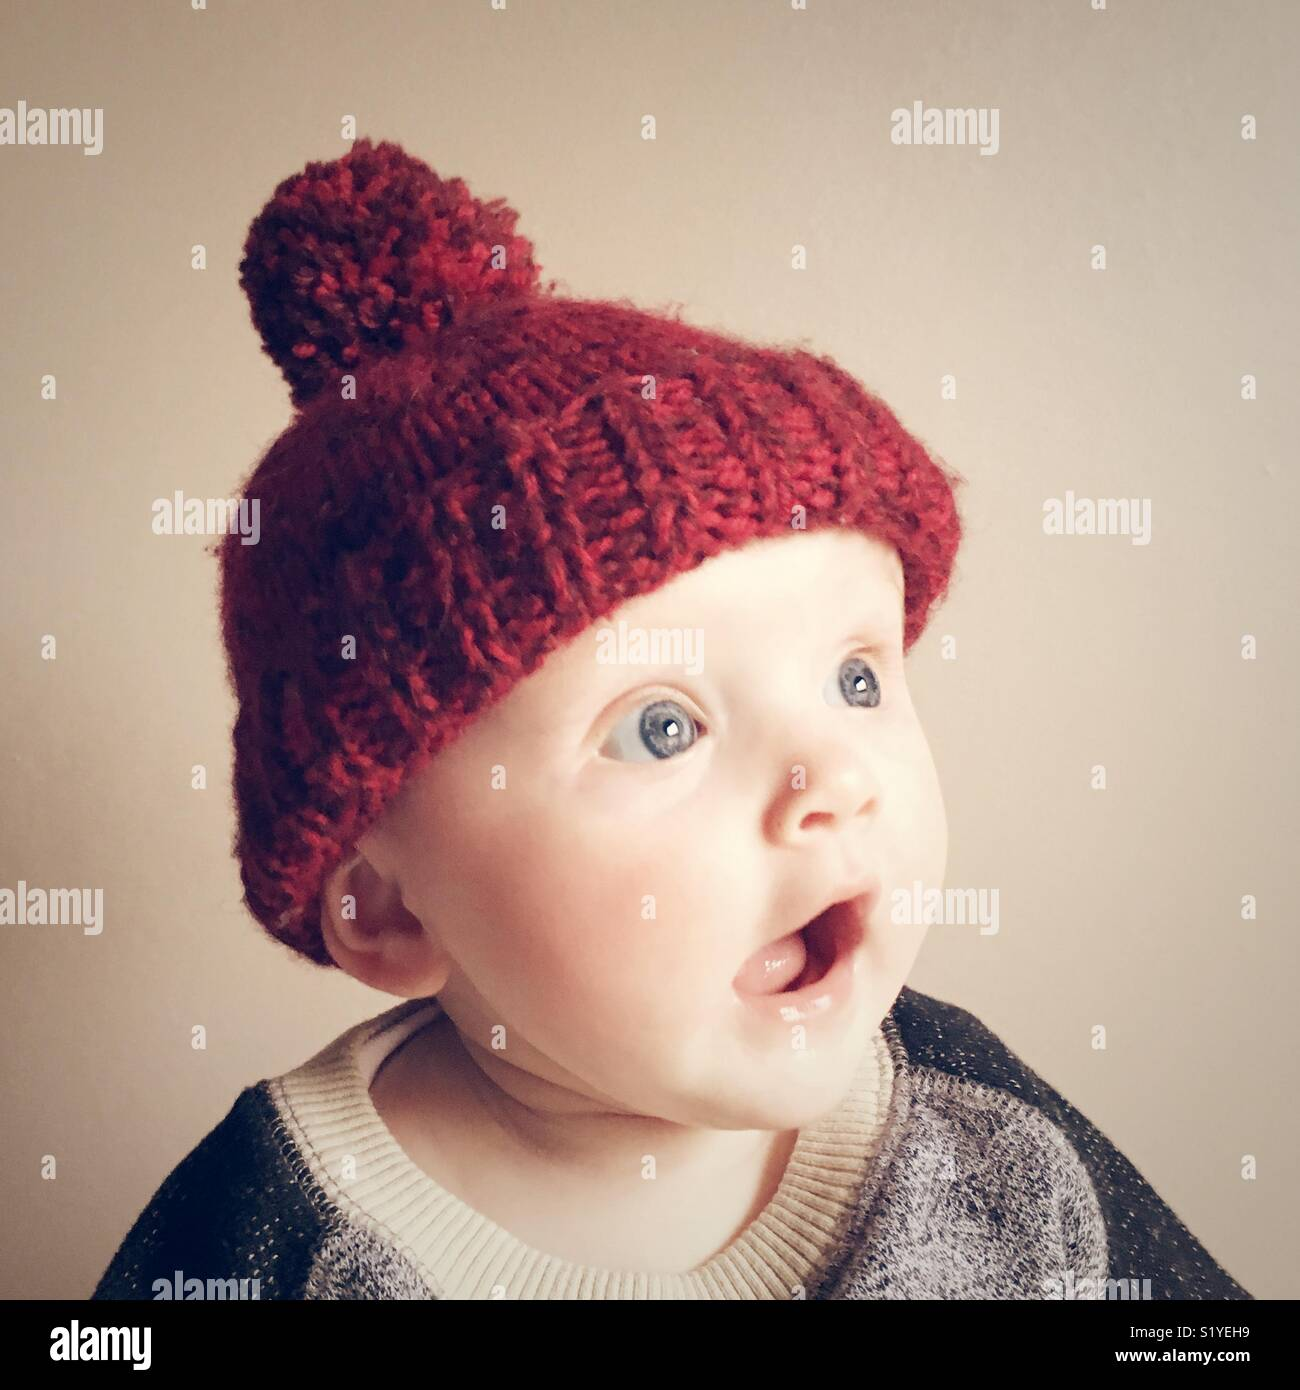 Baby wearing a red woolly hat - Stock Image